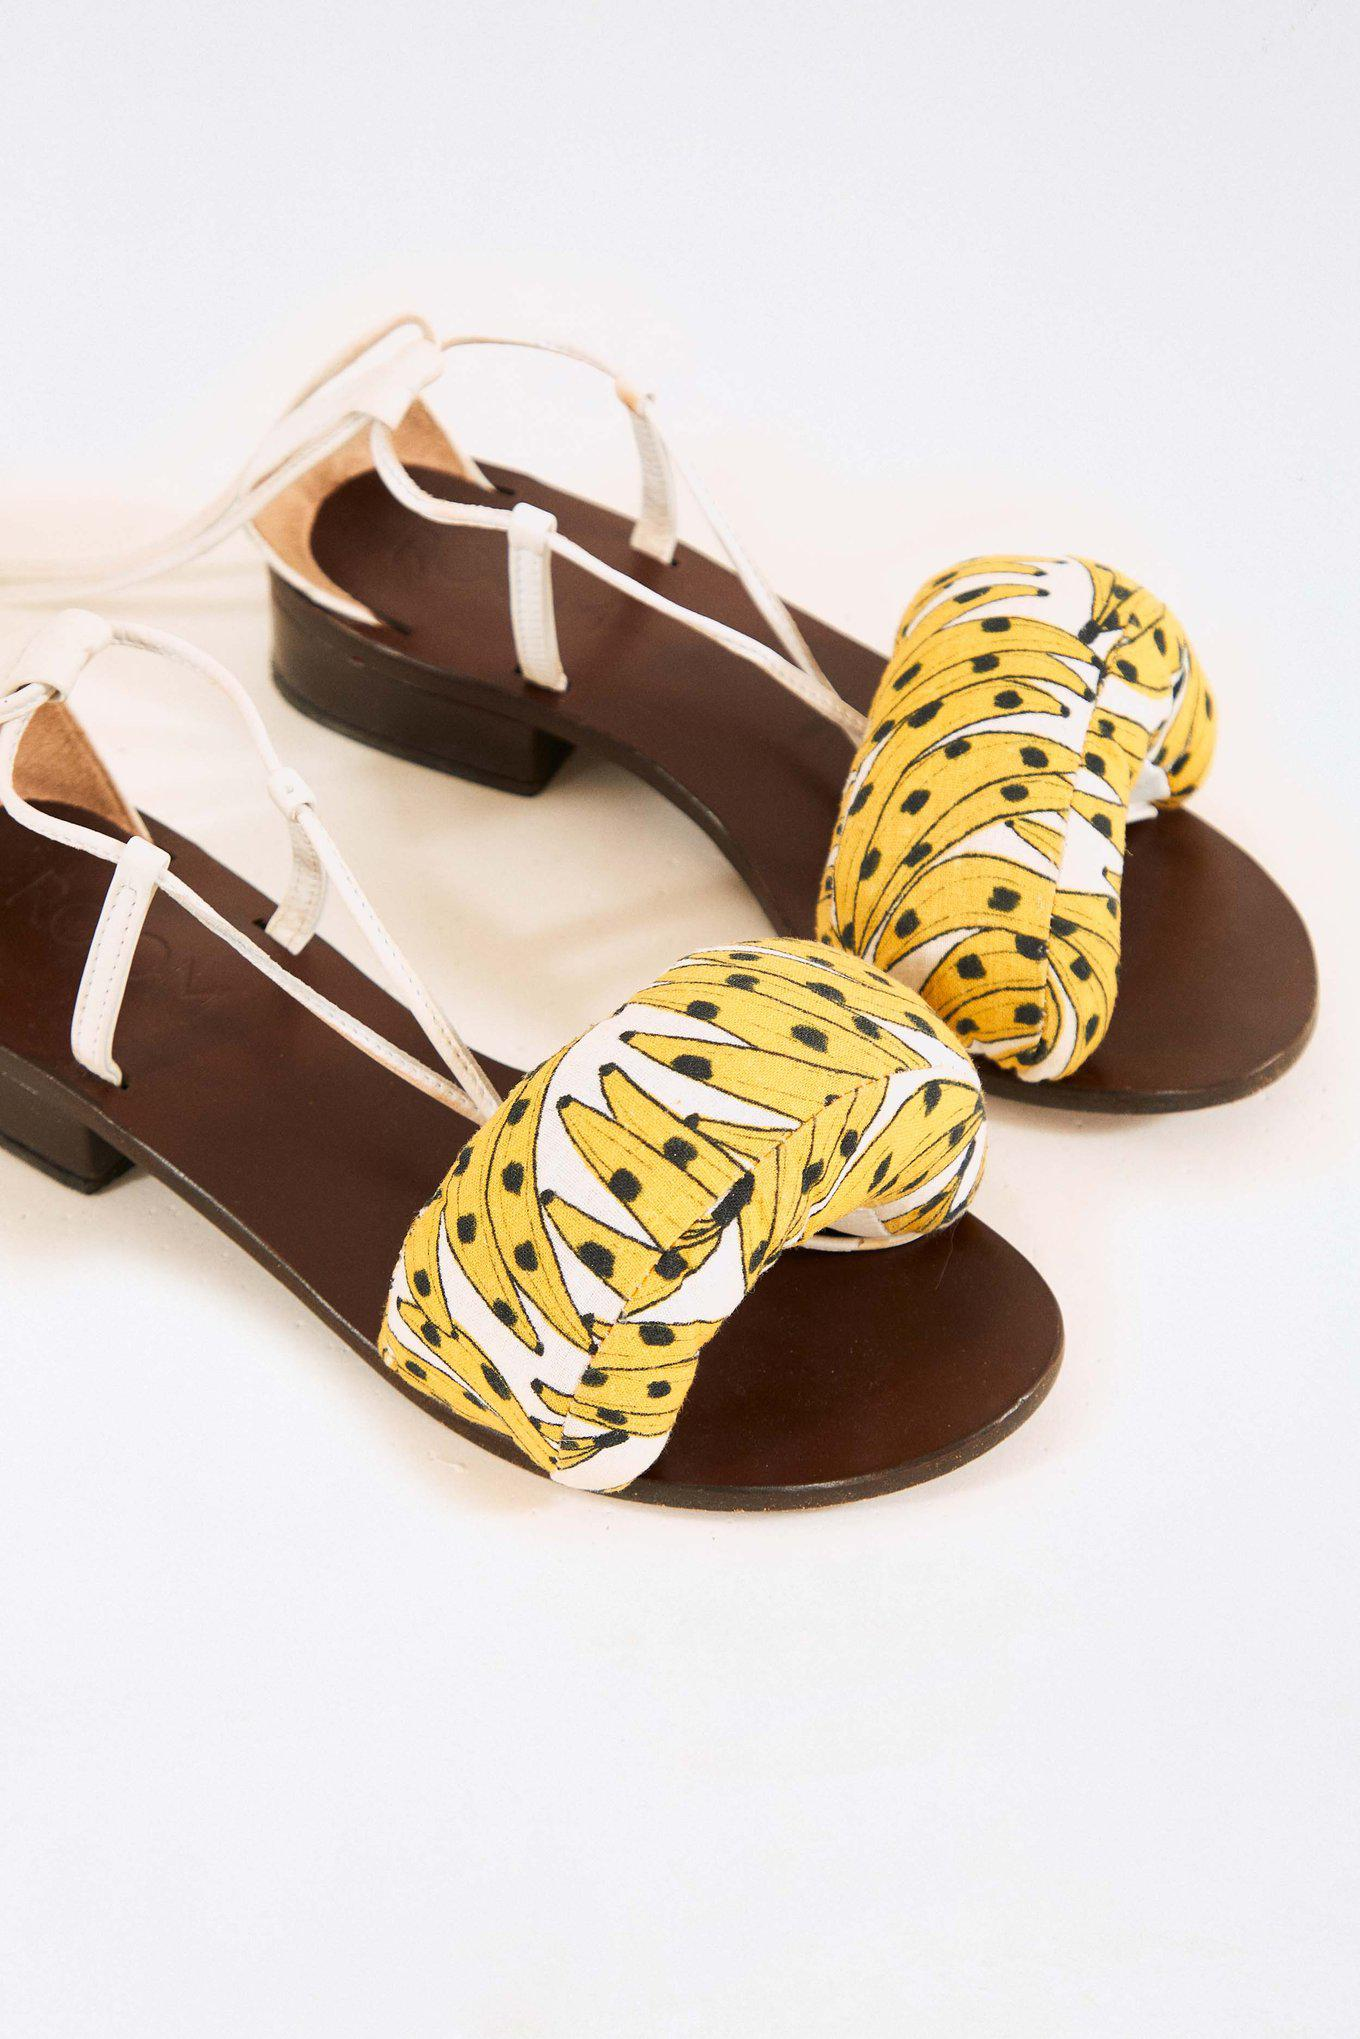 WHITE SPOTTED BANANAS ROOM STRAPS SANDALS